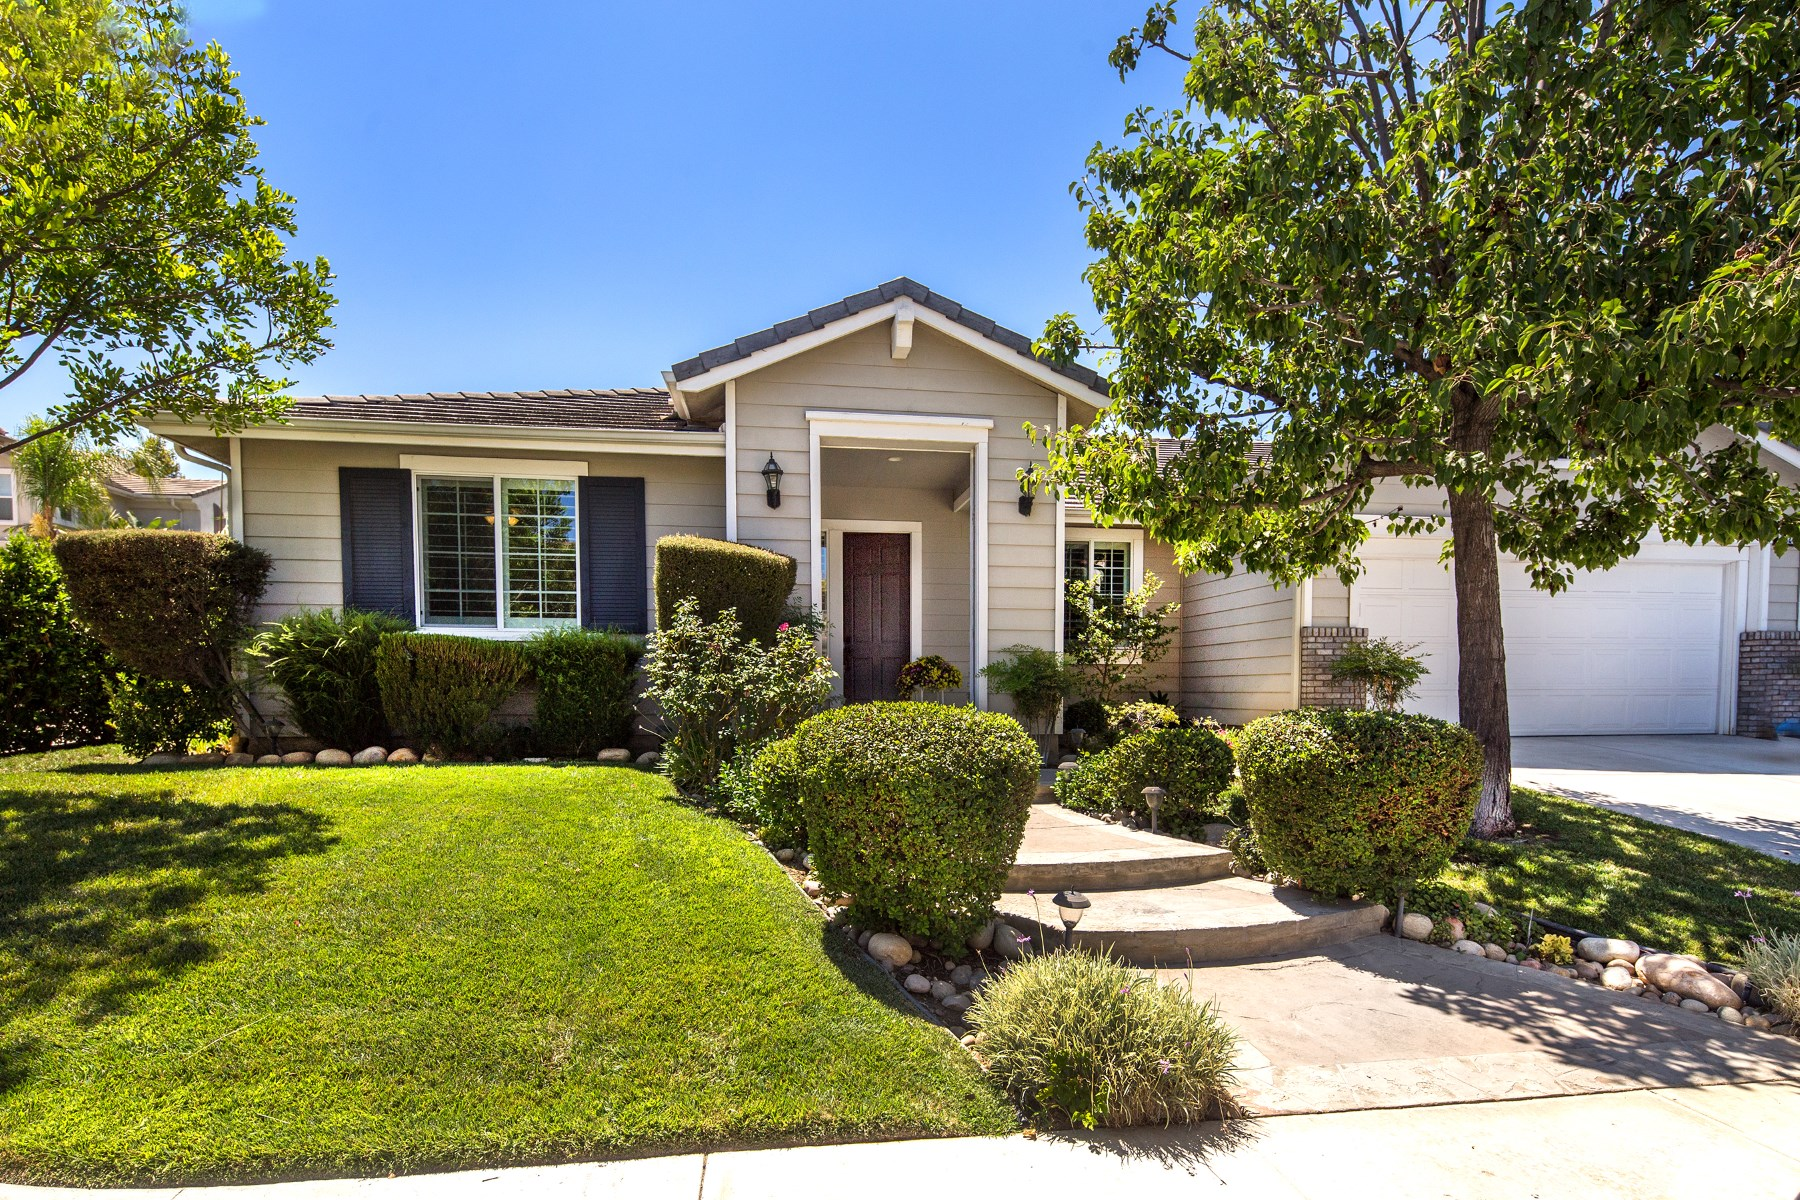 Single Family Home for Sale at Your Forever Home 5324 Willow Oak Street Simi Valley, California, 93063 United States